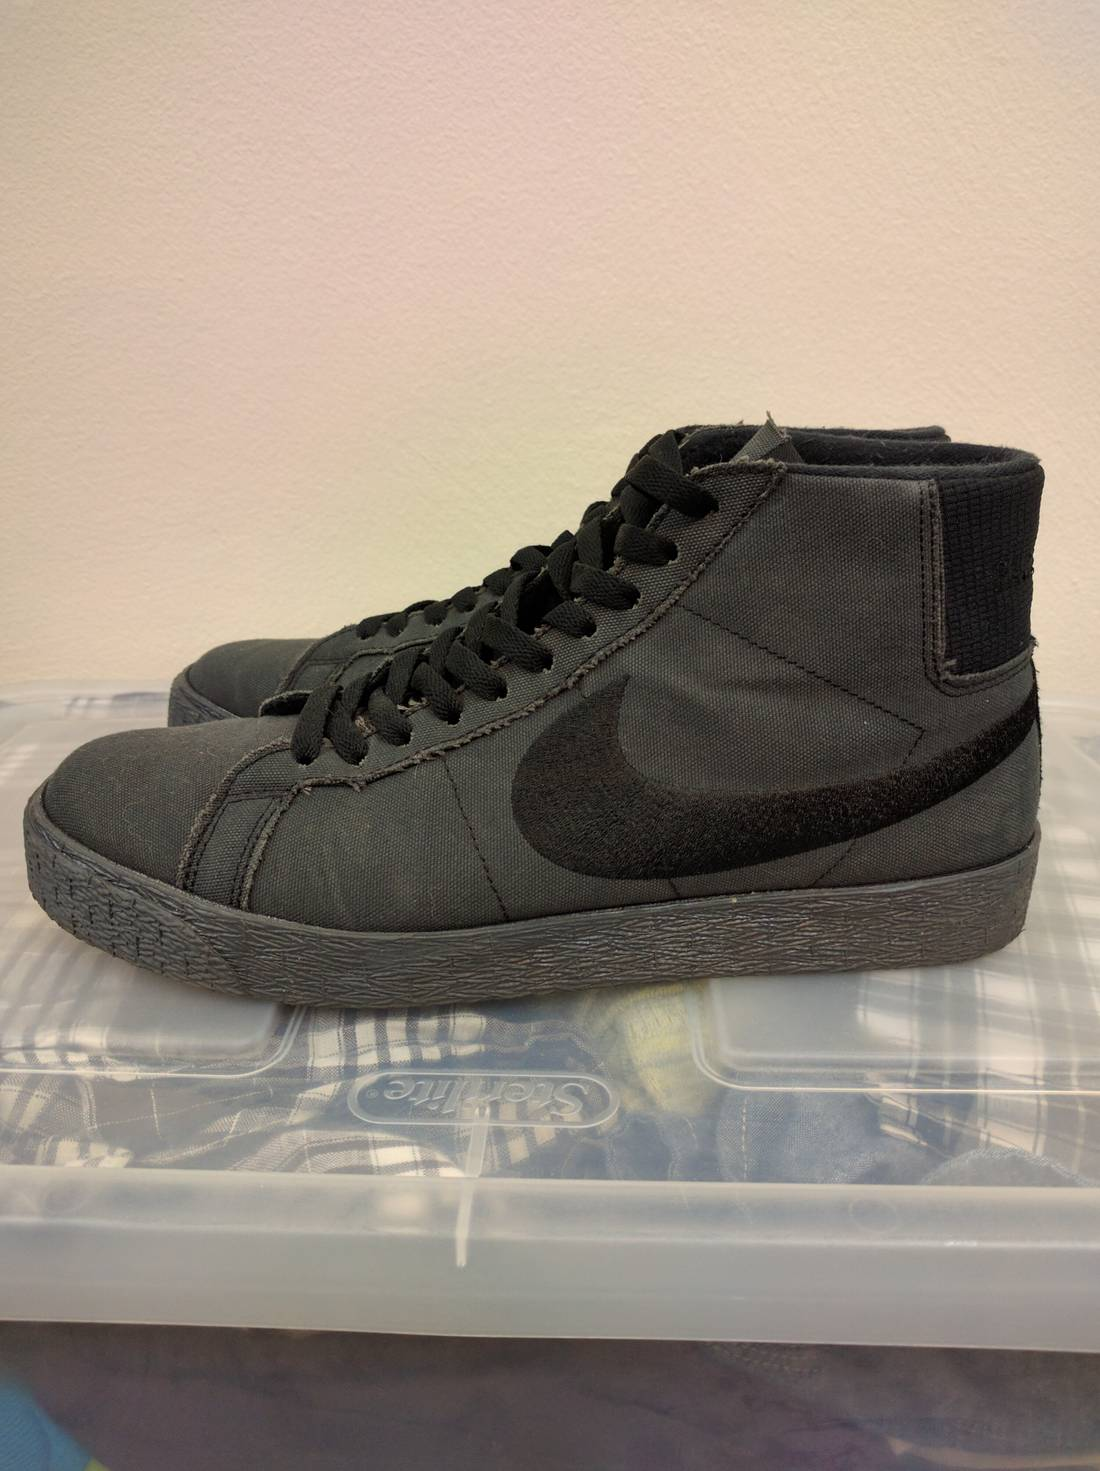 PASS ~ PORT and Nike SB Drop Murdered Out Blazer Hi